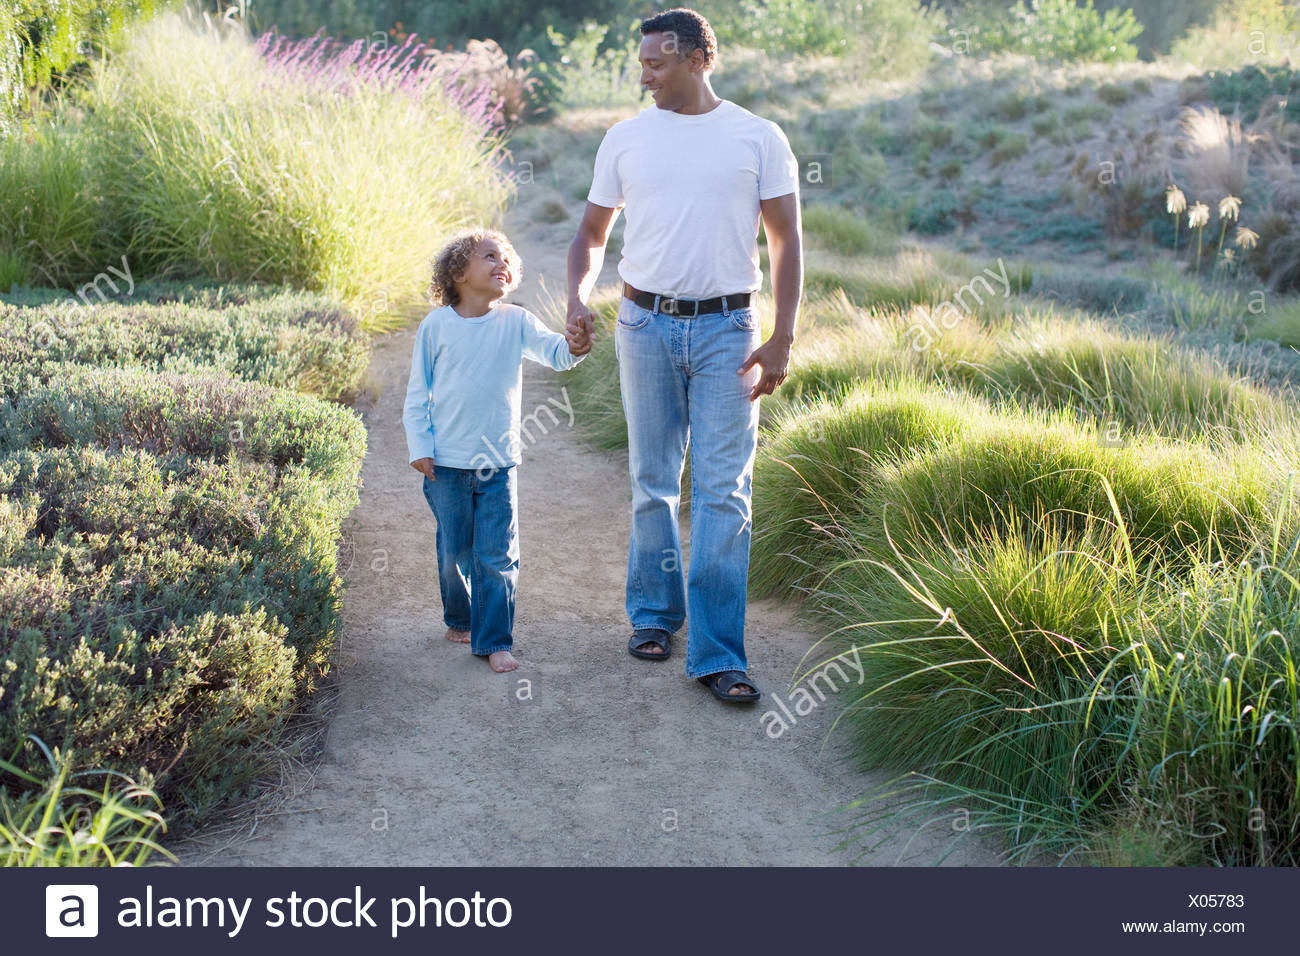 African father and son walking in garden - Stock Image